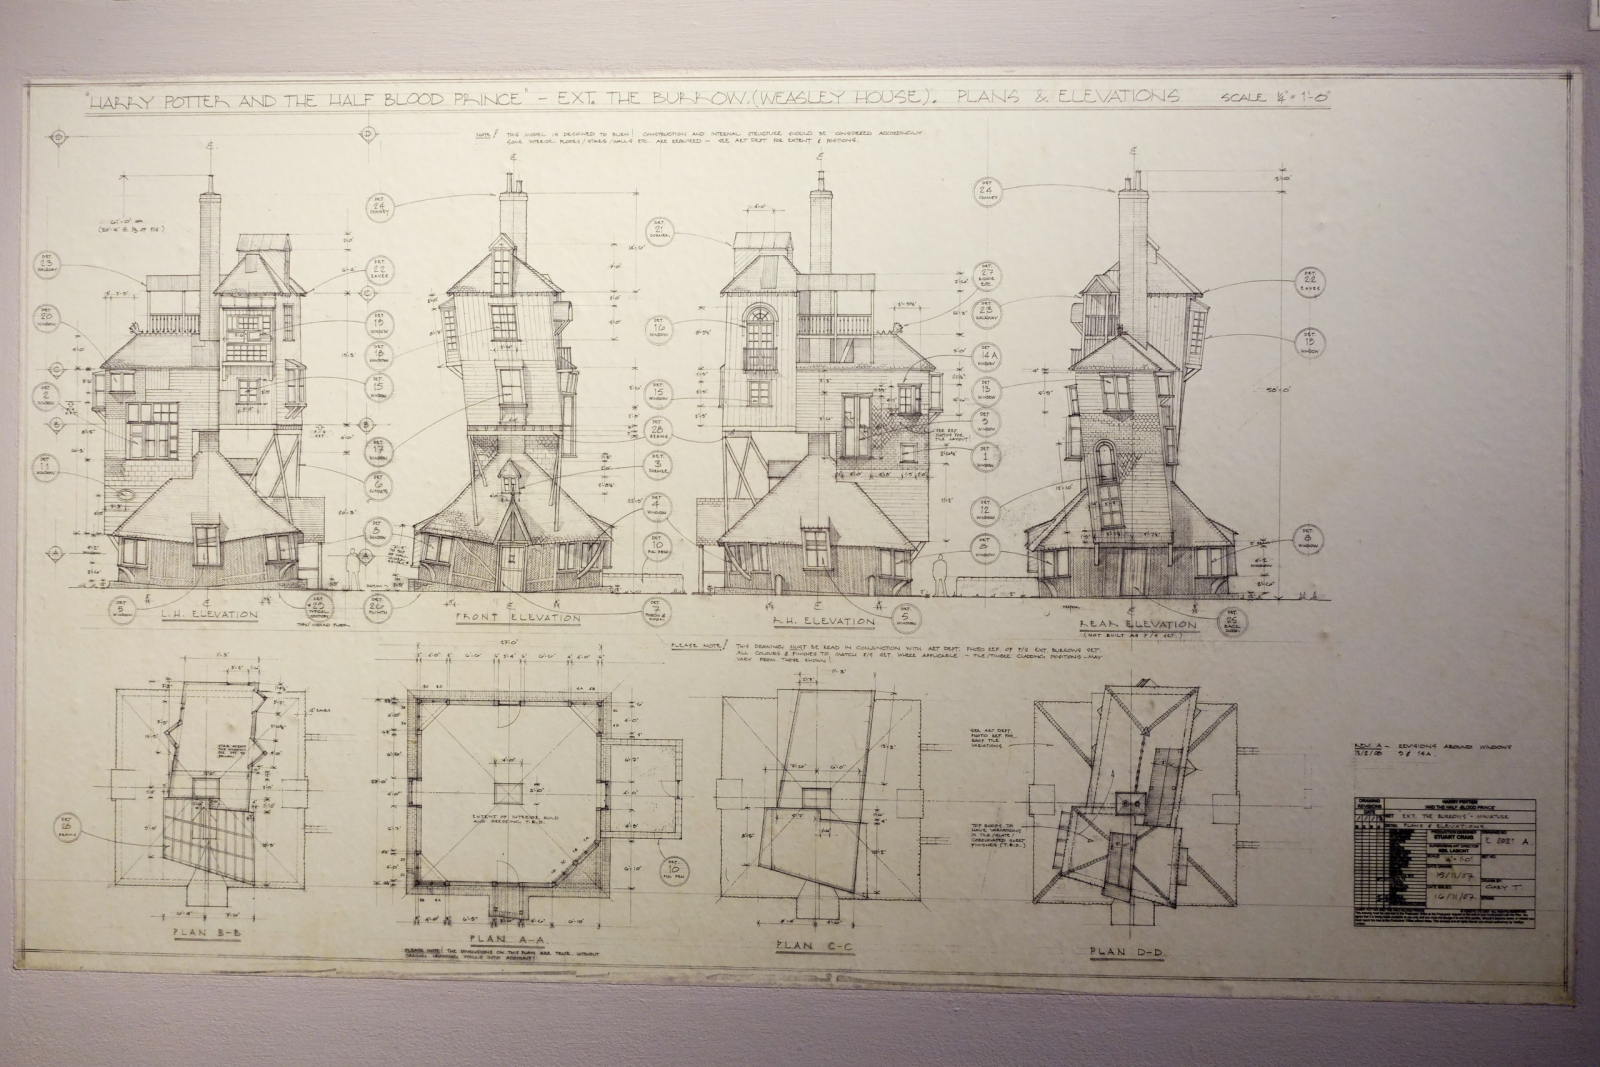 Architectural drawings for Harry Potter films